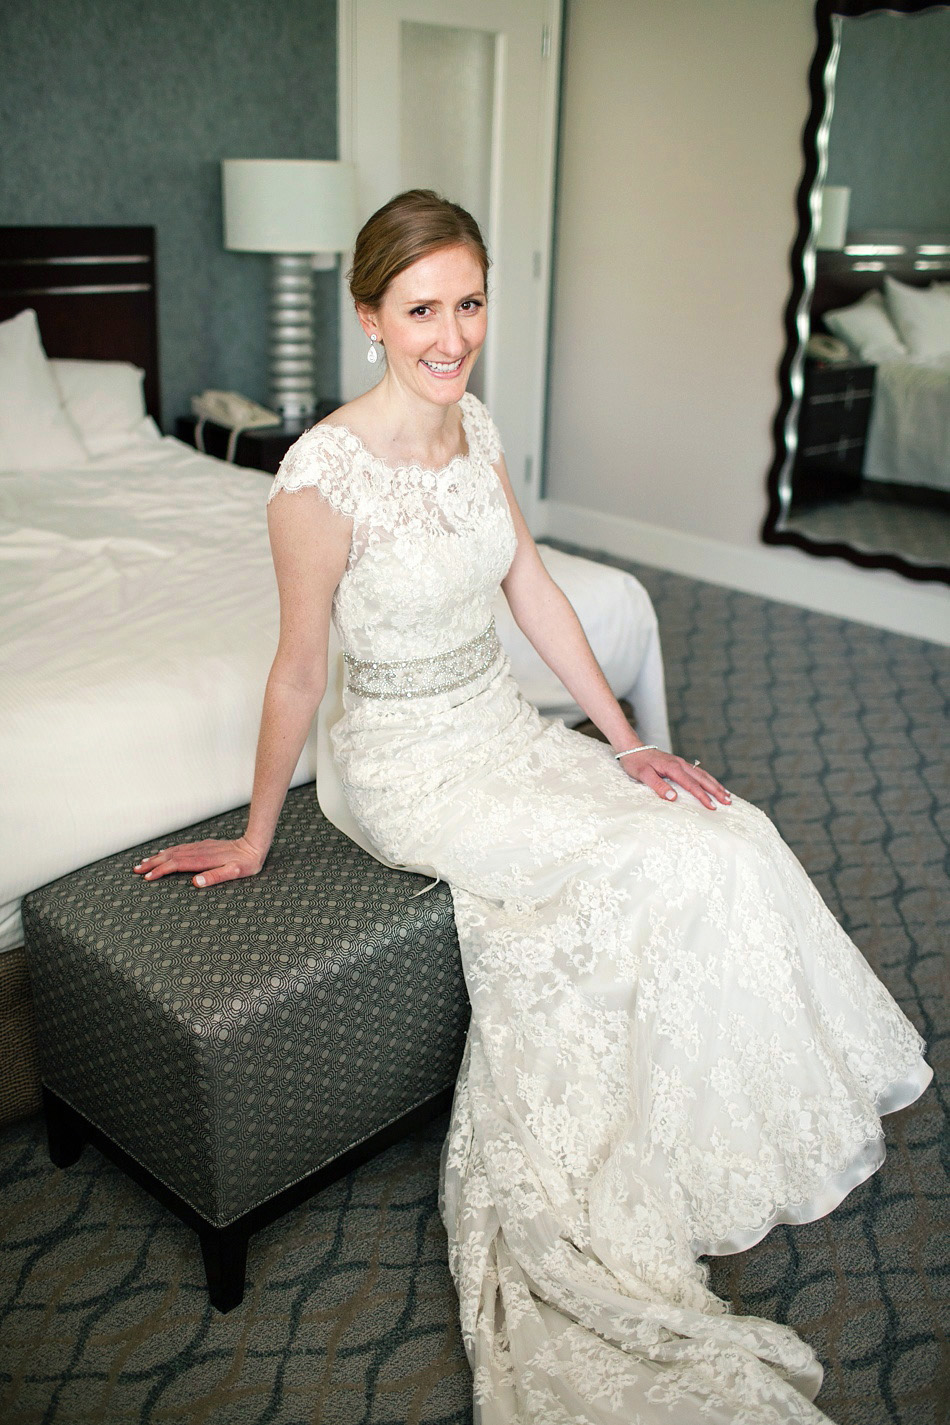 1-Orrington-Hilton-Evanston-Wedding-09a